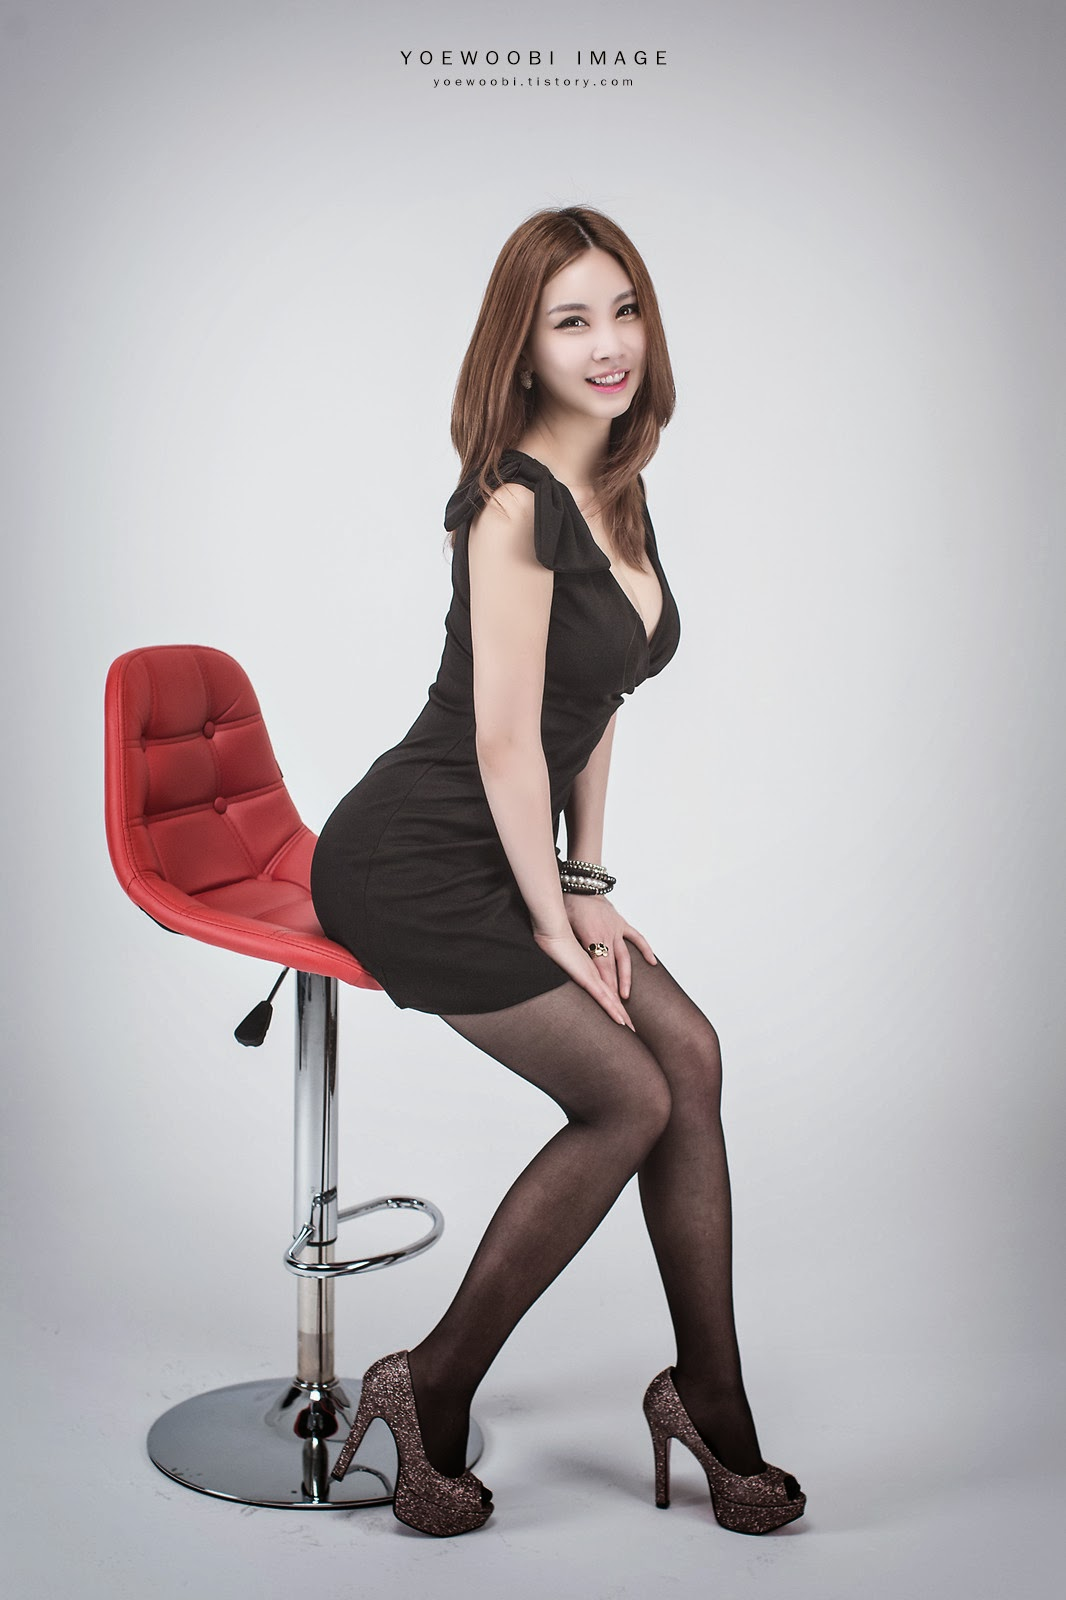 4 Lee Eun Yu - Little Black Dress - very cute asian girl-girlcute4u.blogspot.com